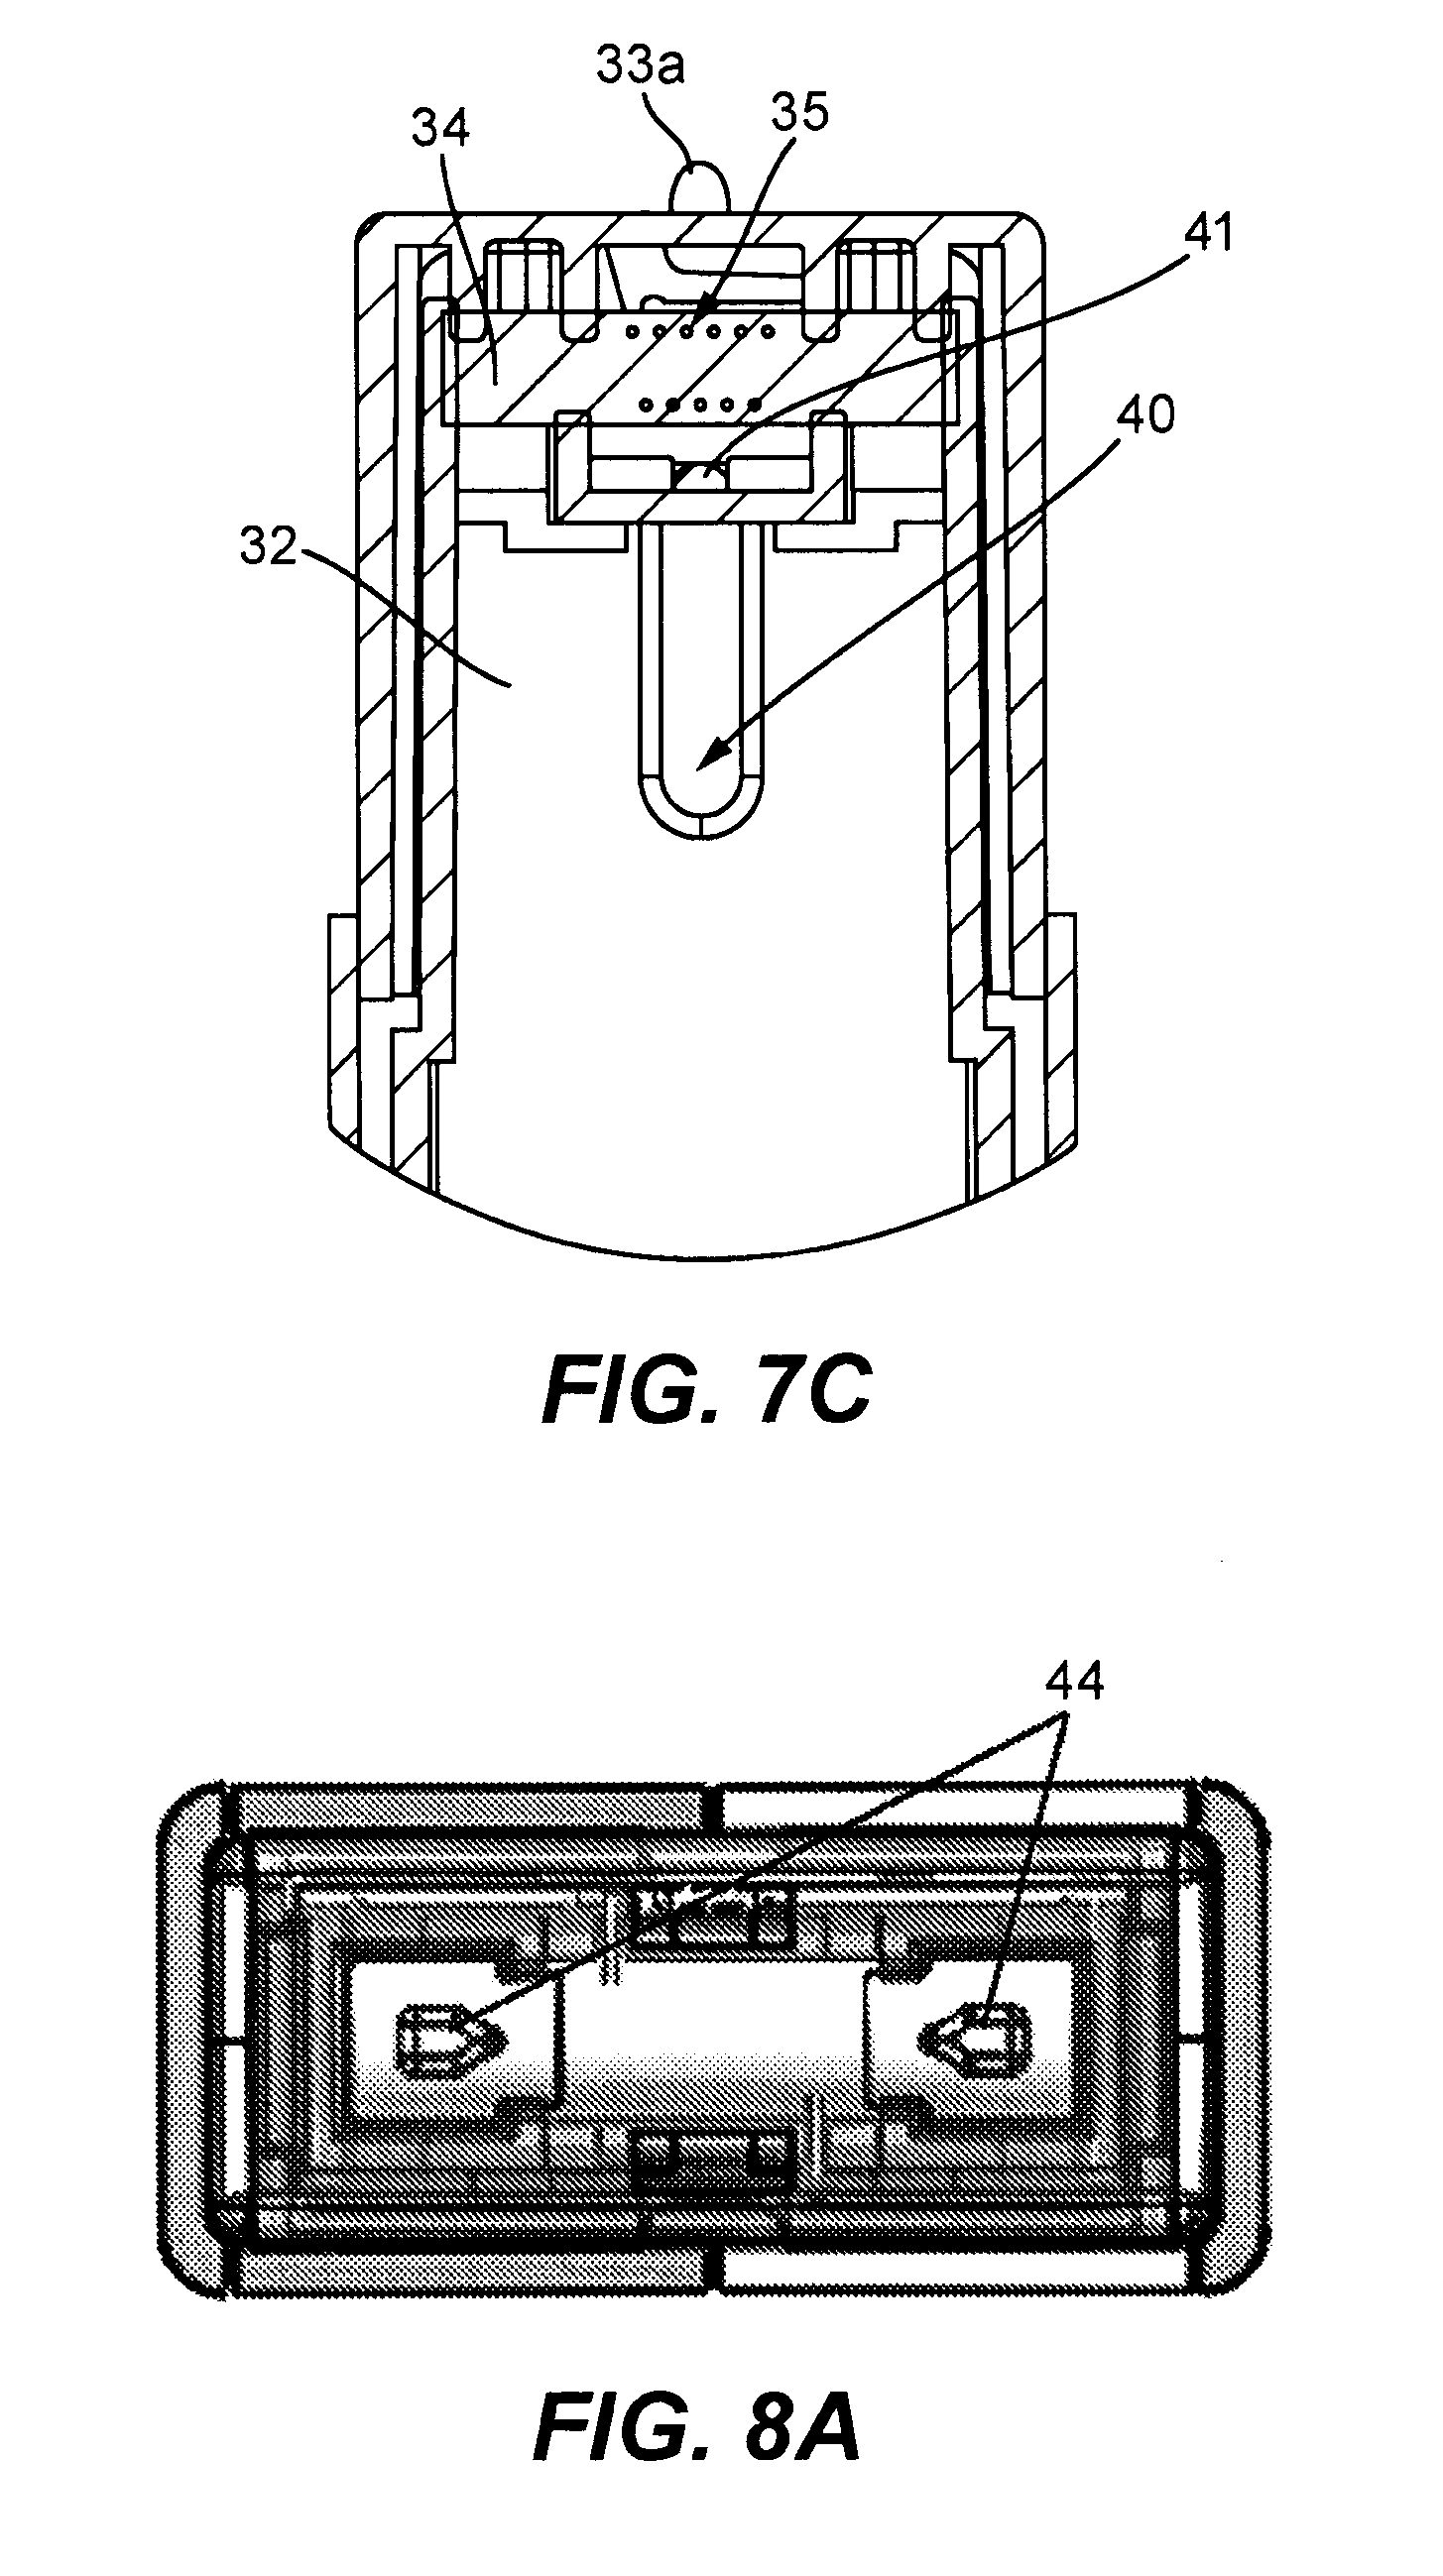 Us10058130b2 Cartridge For Use With A Vaporizer Device Google Coilless Fm Transmitter Patents